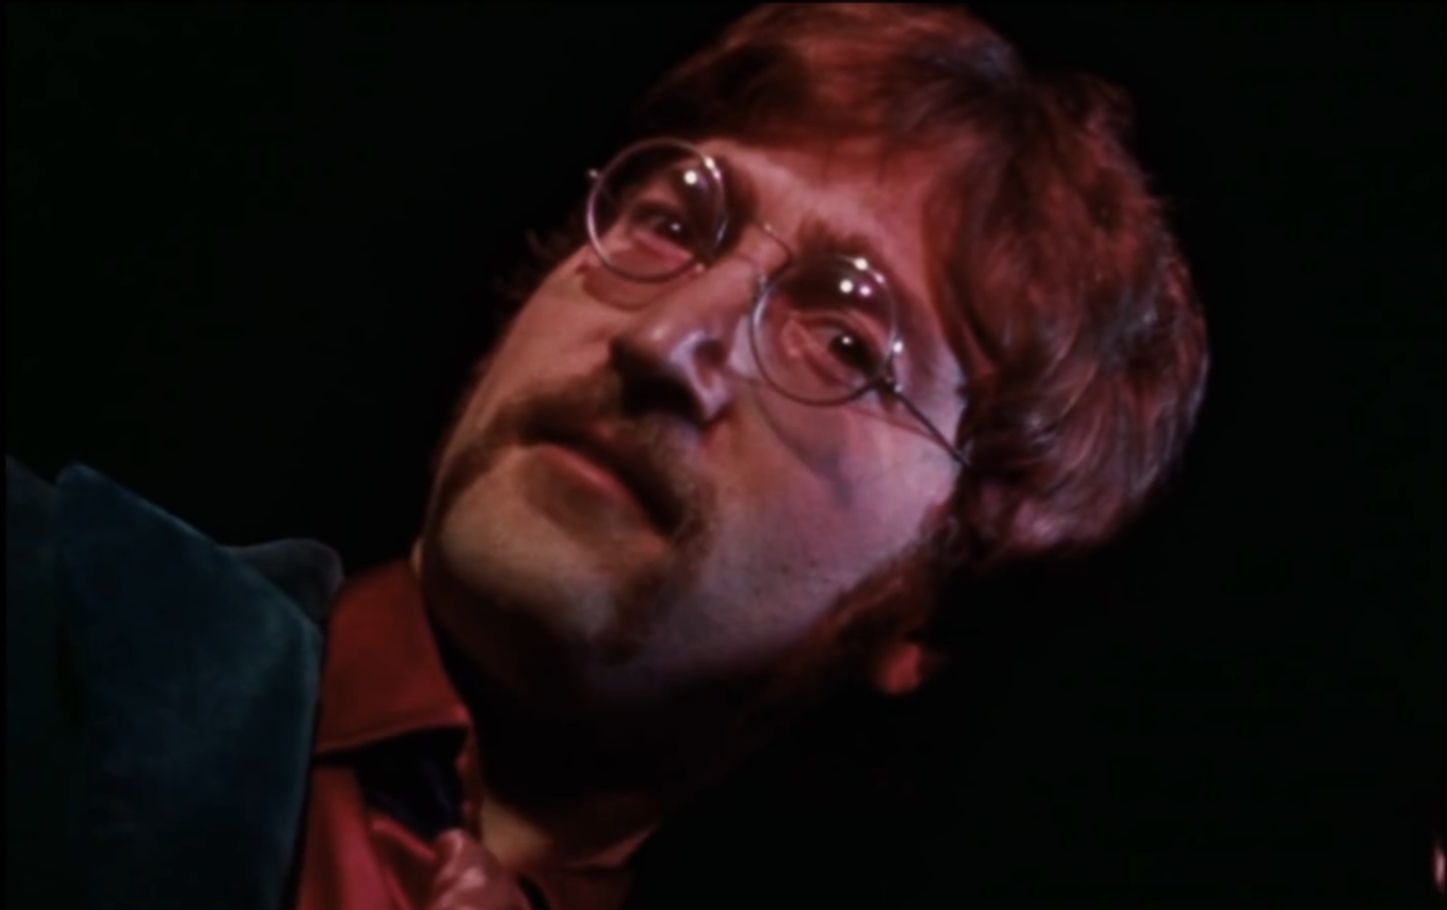 beatles a day in the life video still